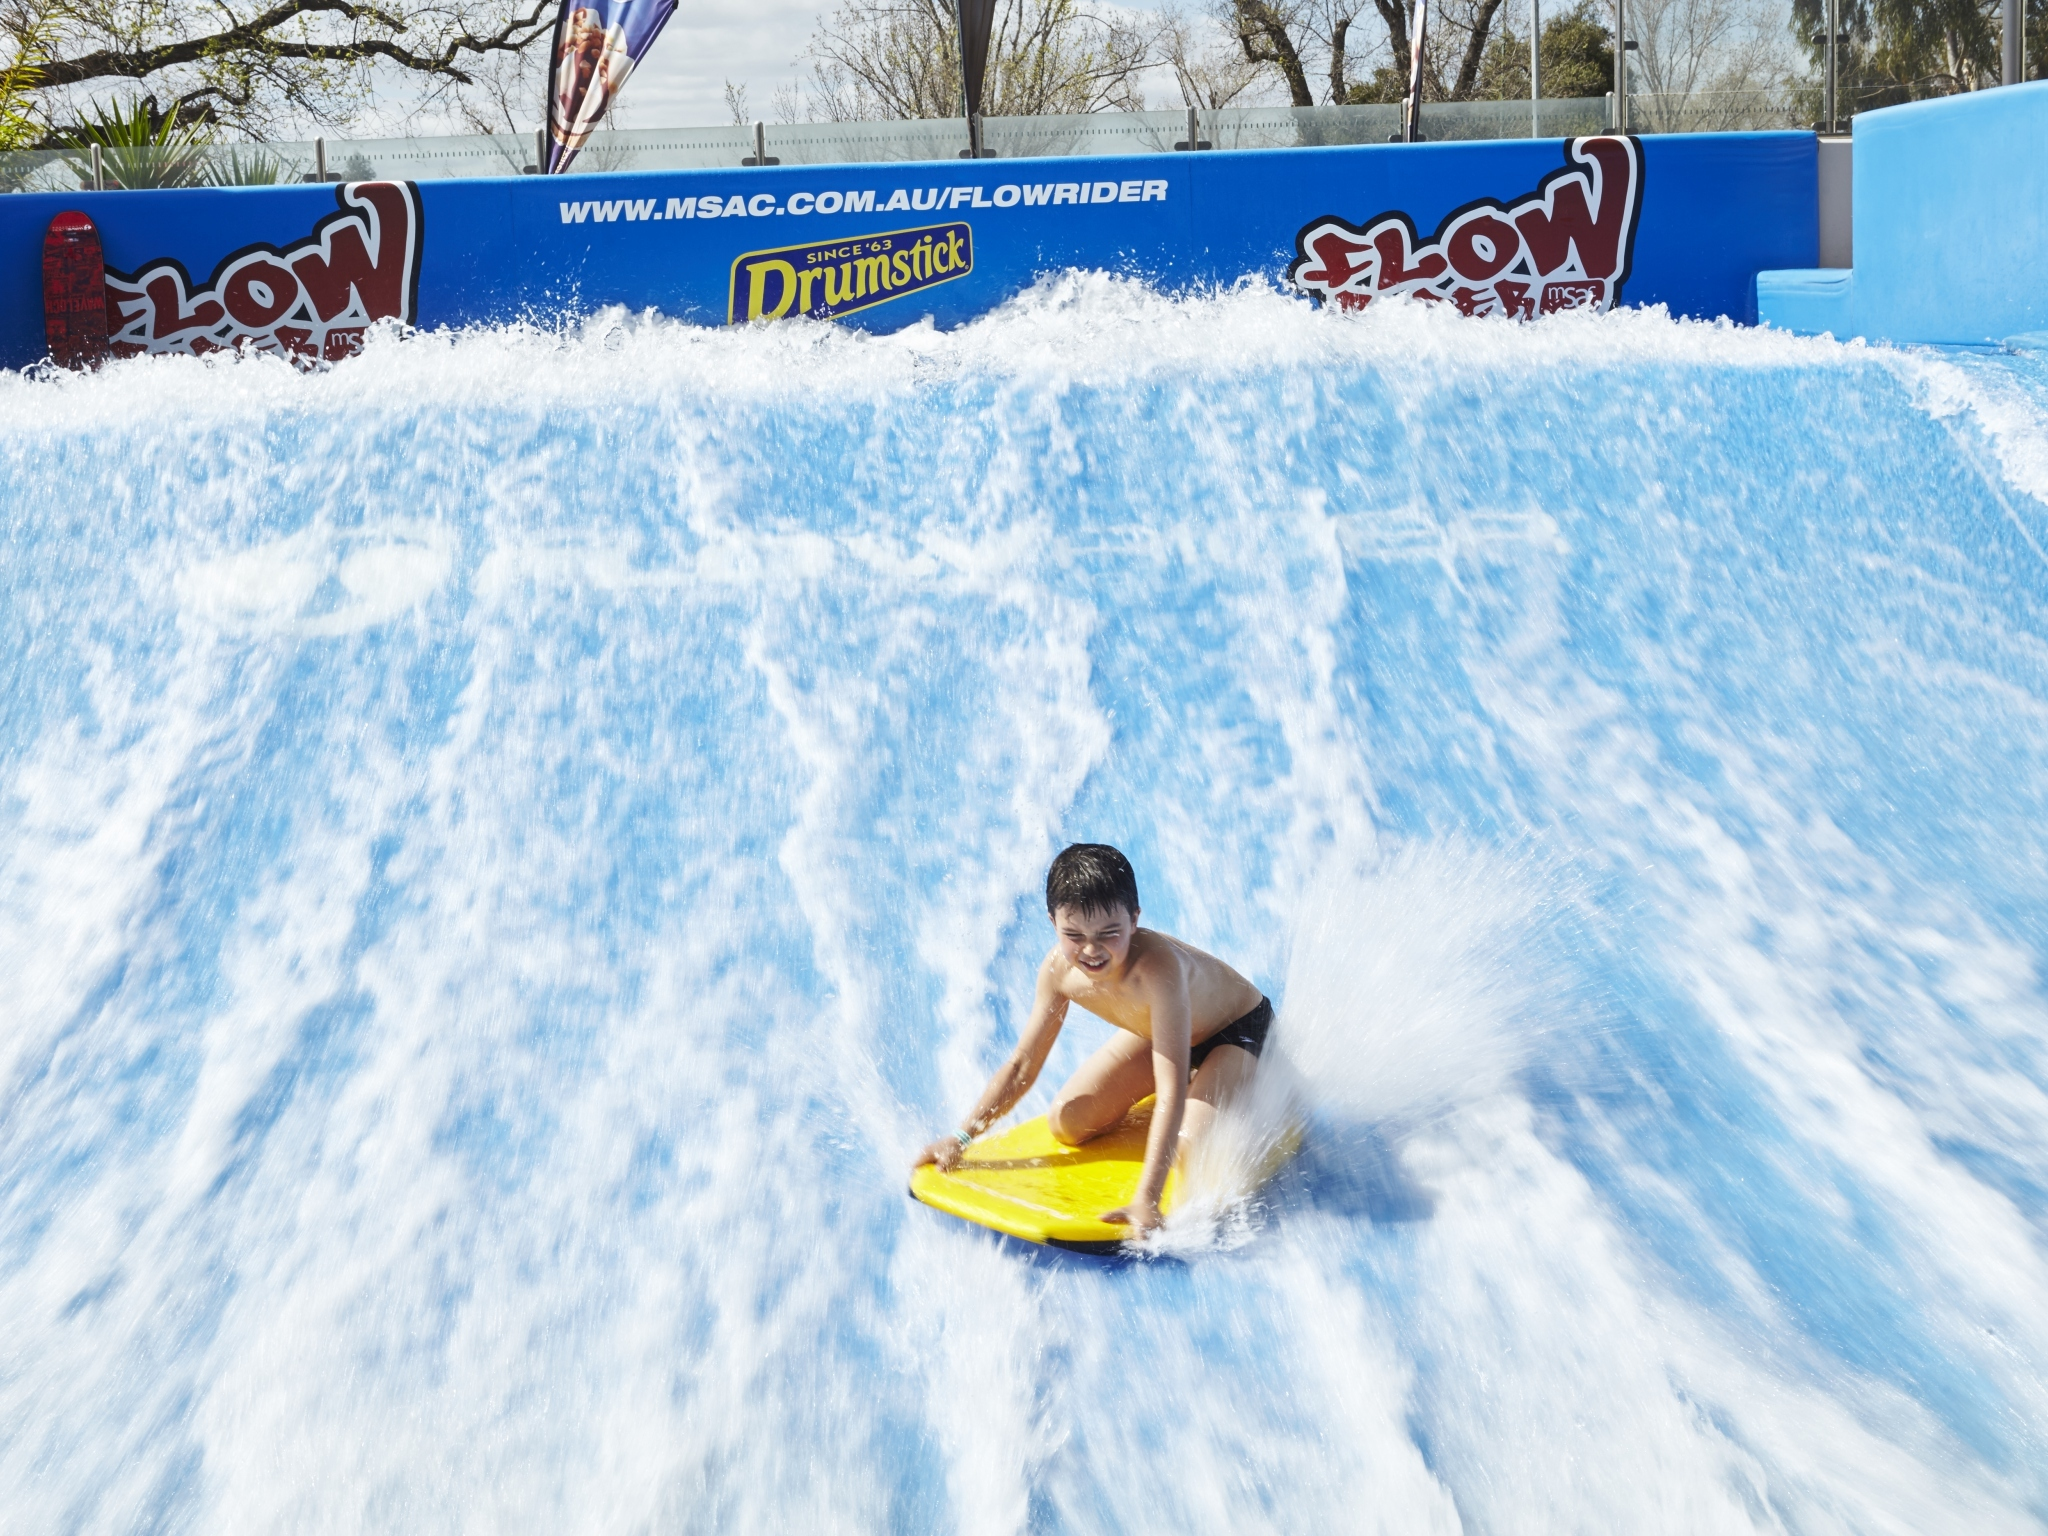 A boy rides a bodyboard on the FlowRider surfing simulator at the Melbourne Sports and Aquatic Centre (MSAC)